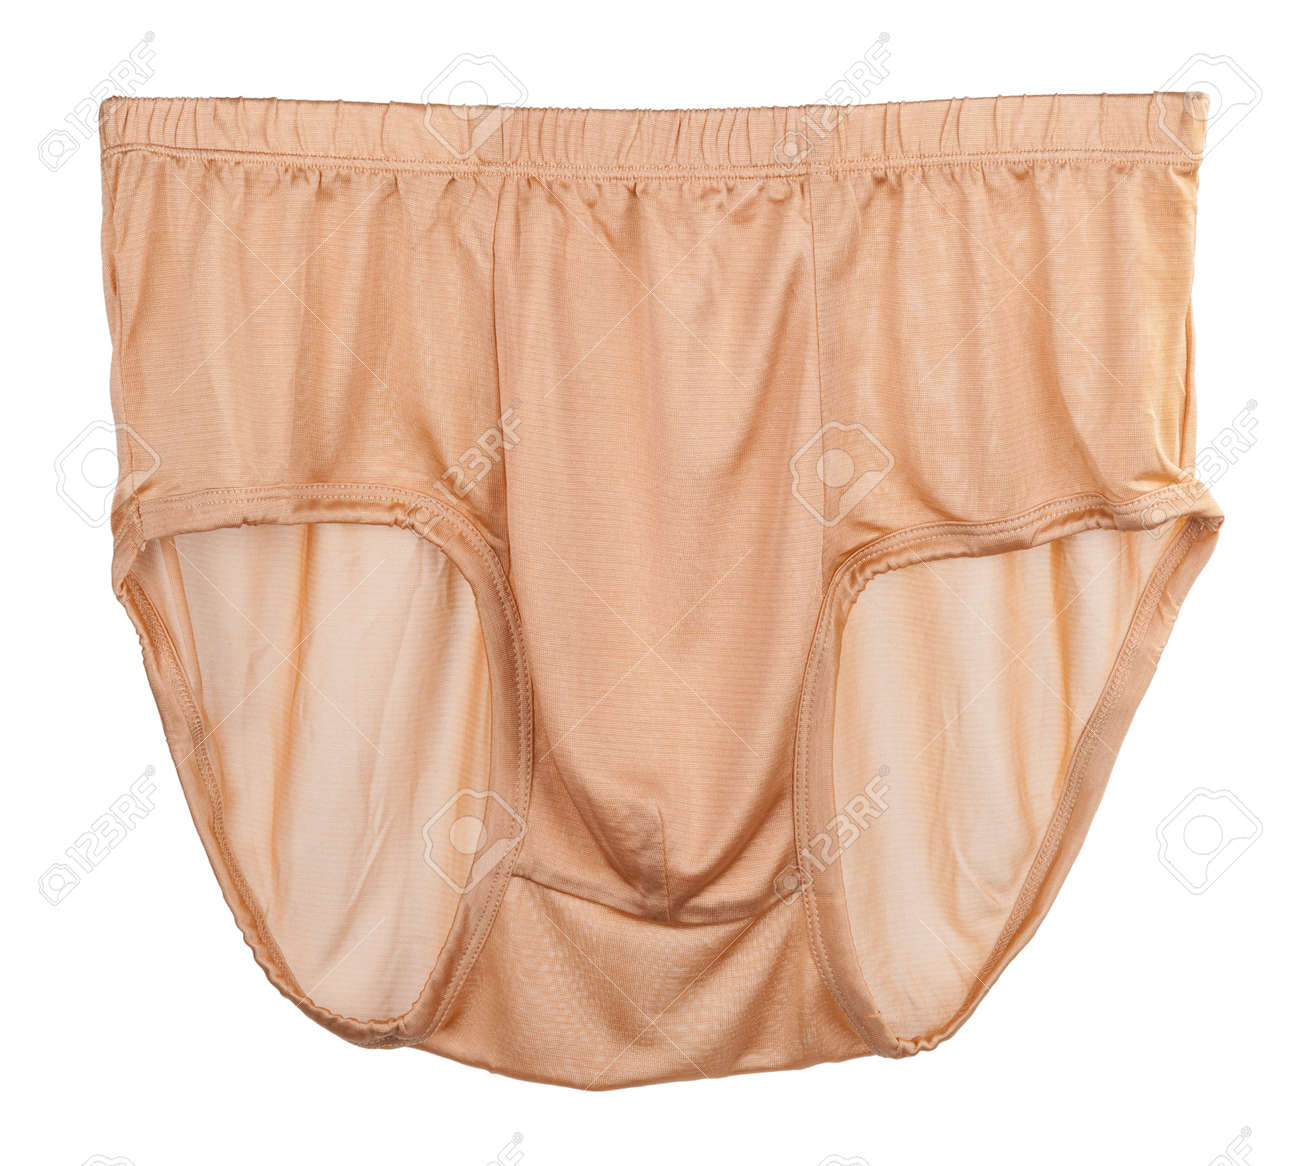 5464ce040be7 Men's Silk Panties Stock Photo, Picture And Royalty Free Image ...